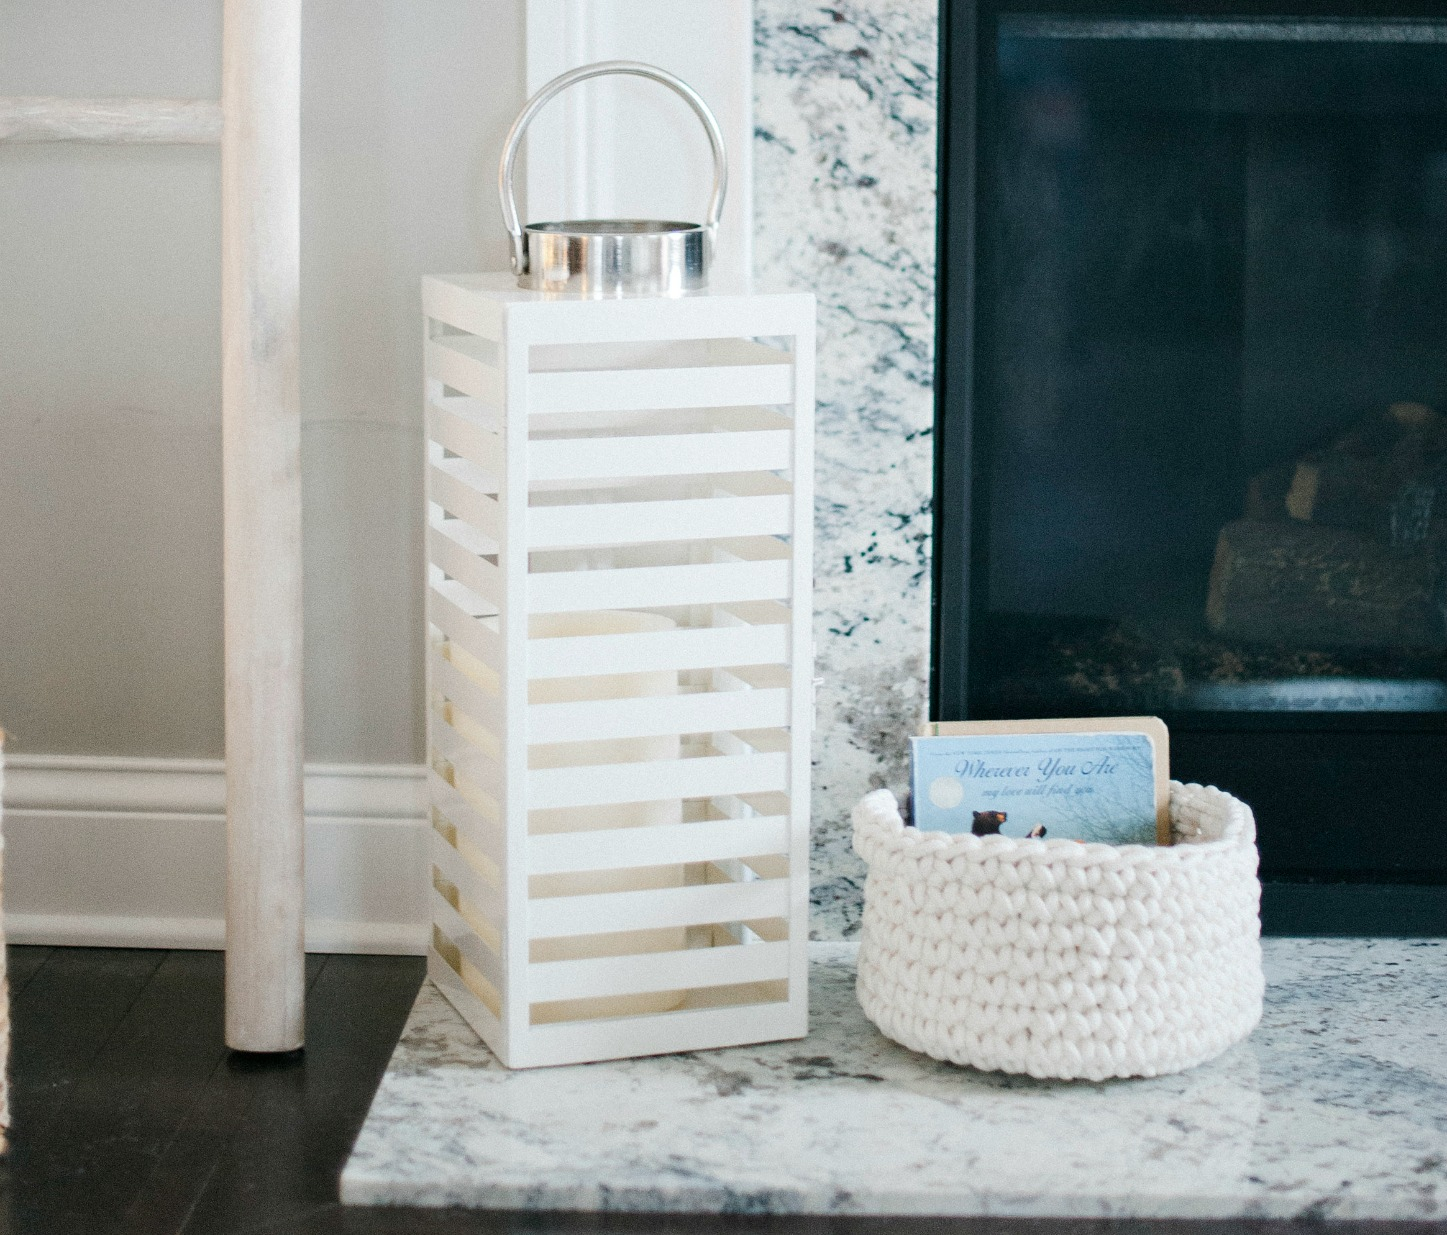 Chic baskets to keep your home clean